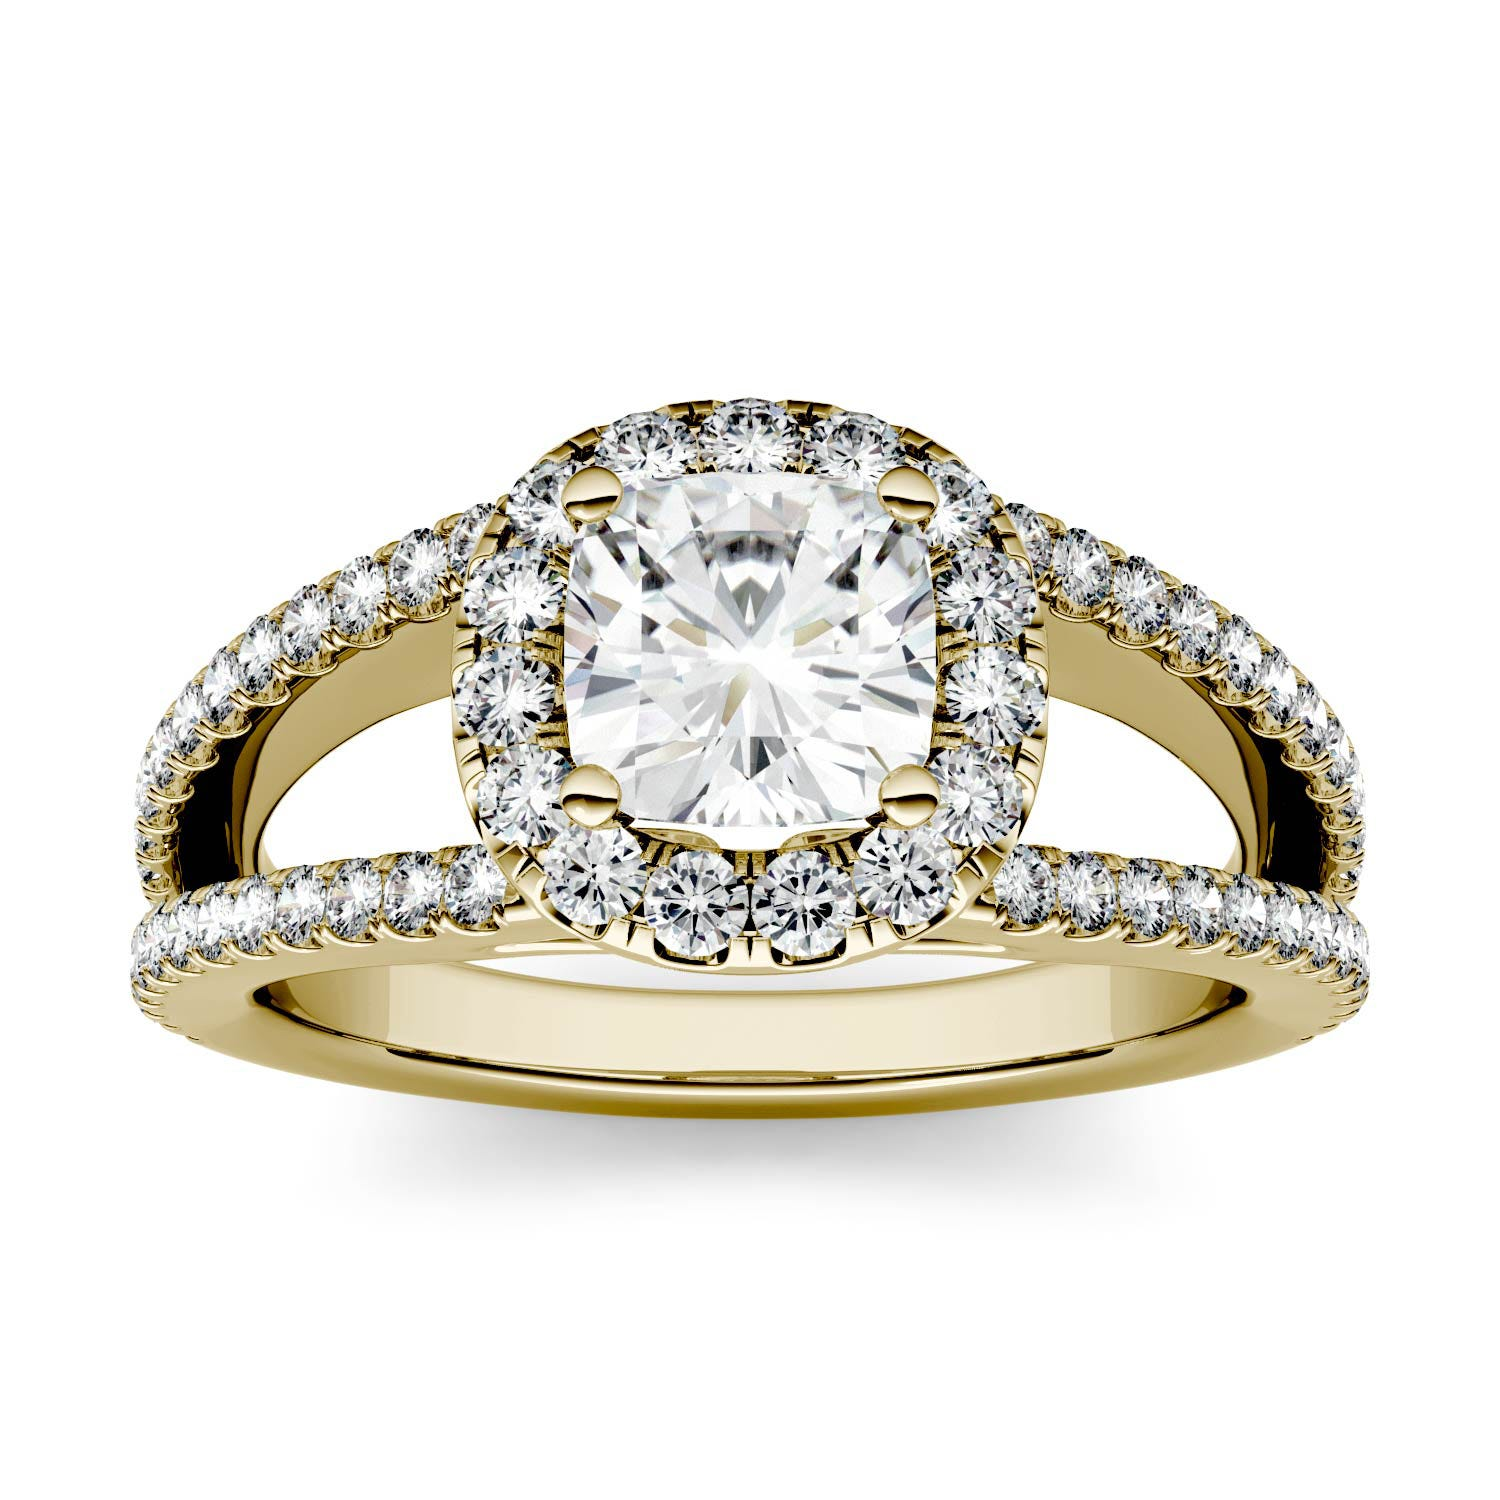 Cushion 1.46cttw DEW Moissanite Split Shank Halo with Side Accents Engagement Ring in 14K Yellow Gold 500116